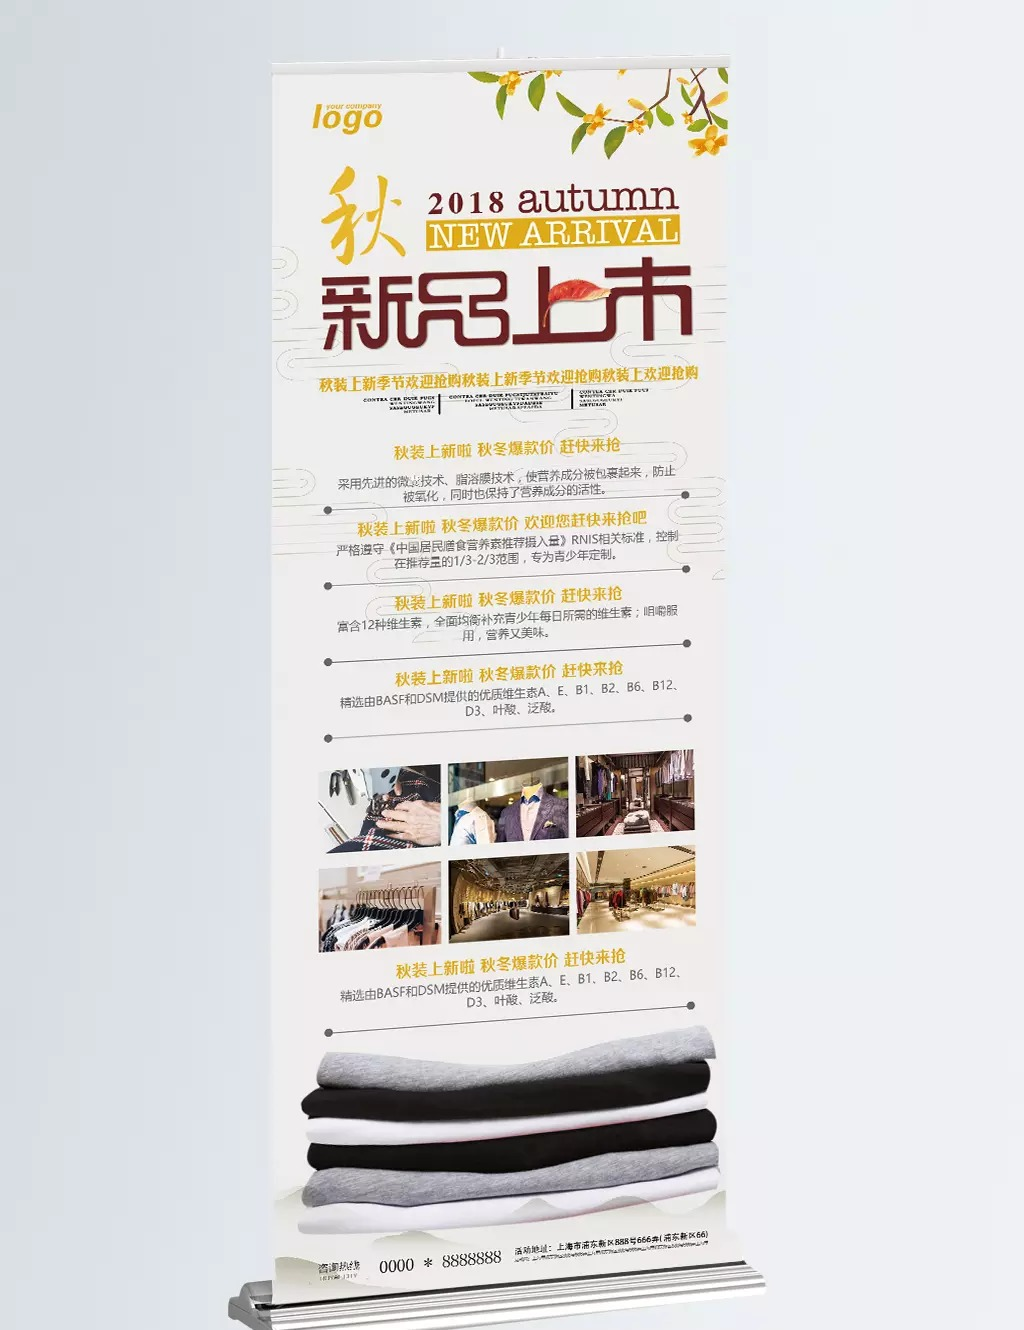 New Display Rack Roll Up In Autumn And Winter Template